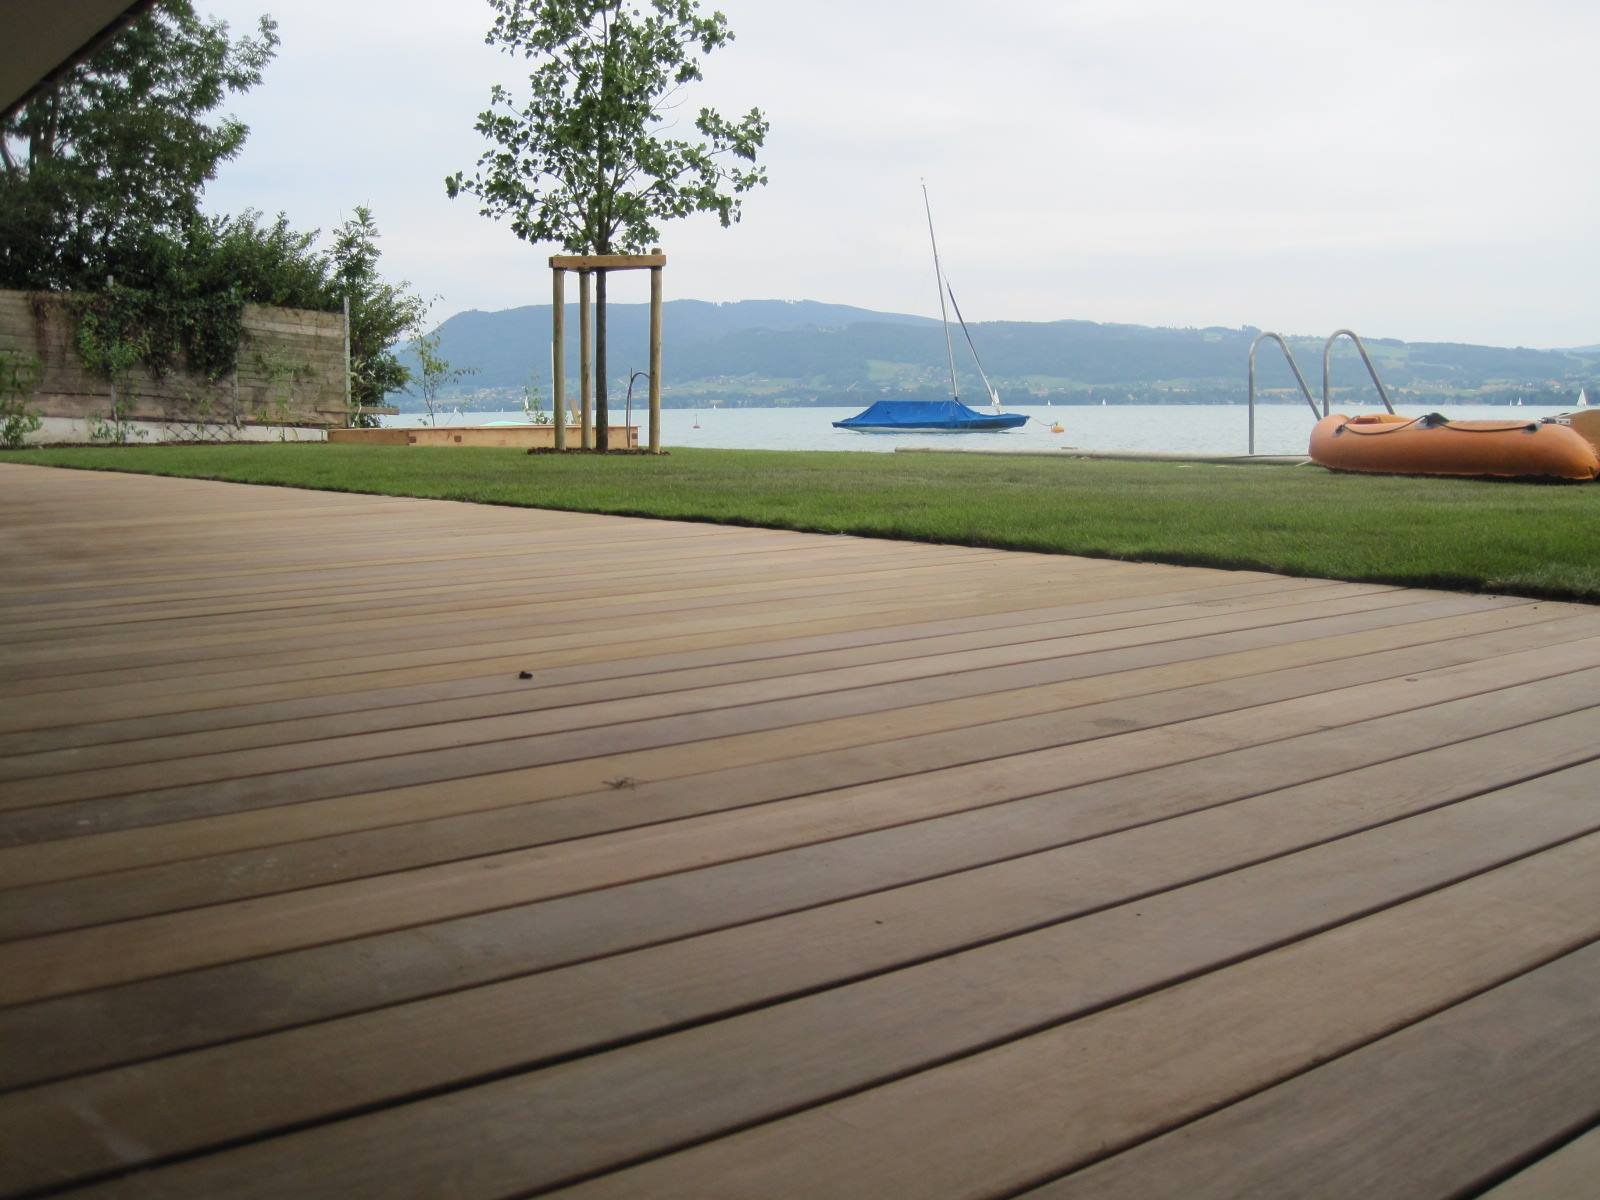 ipe holzterrasse verdeckt verschraubt am see starnberg ammersee. Black Bedroom Furniture Sets. Home Design Ideas